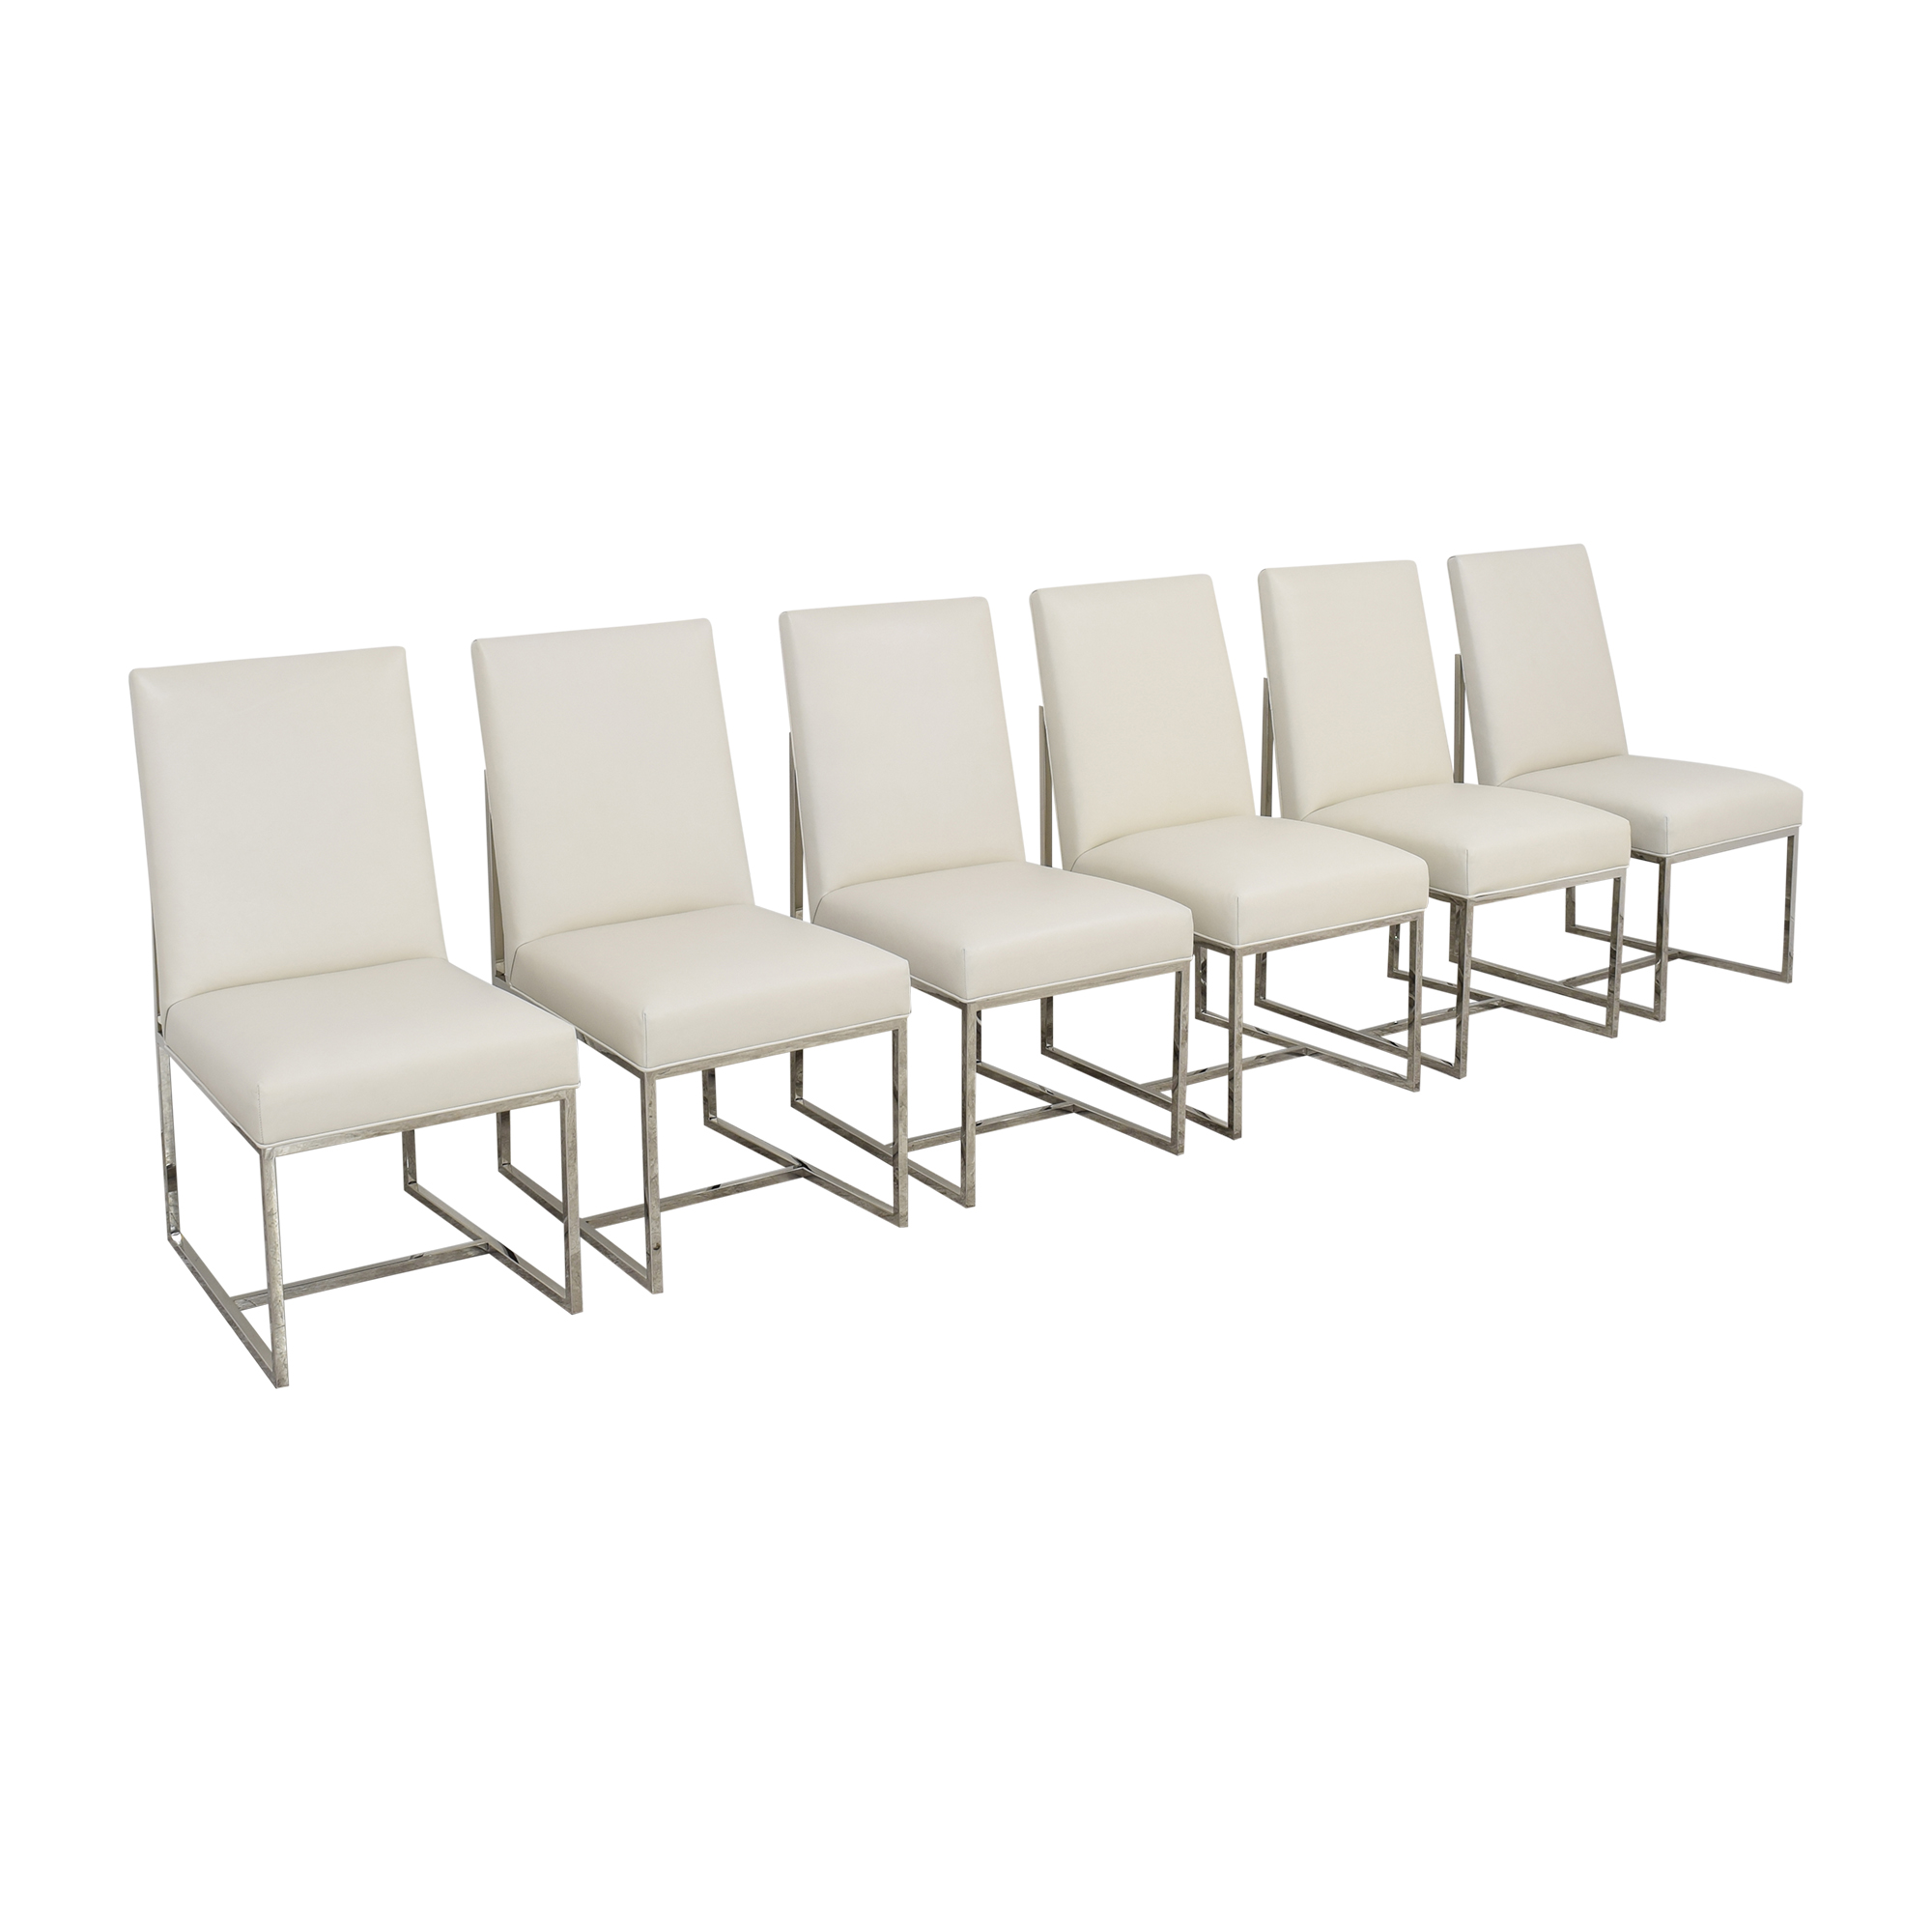 Restoration Hardware Restoration Hardware Grant Leather Side Chairs nj